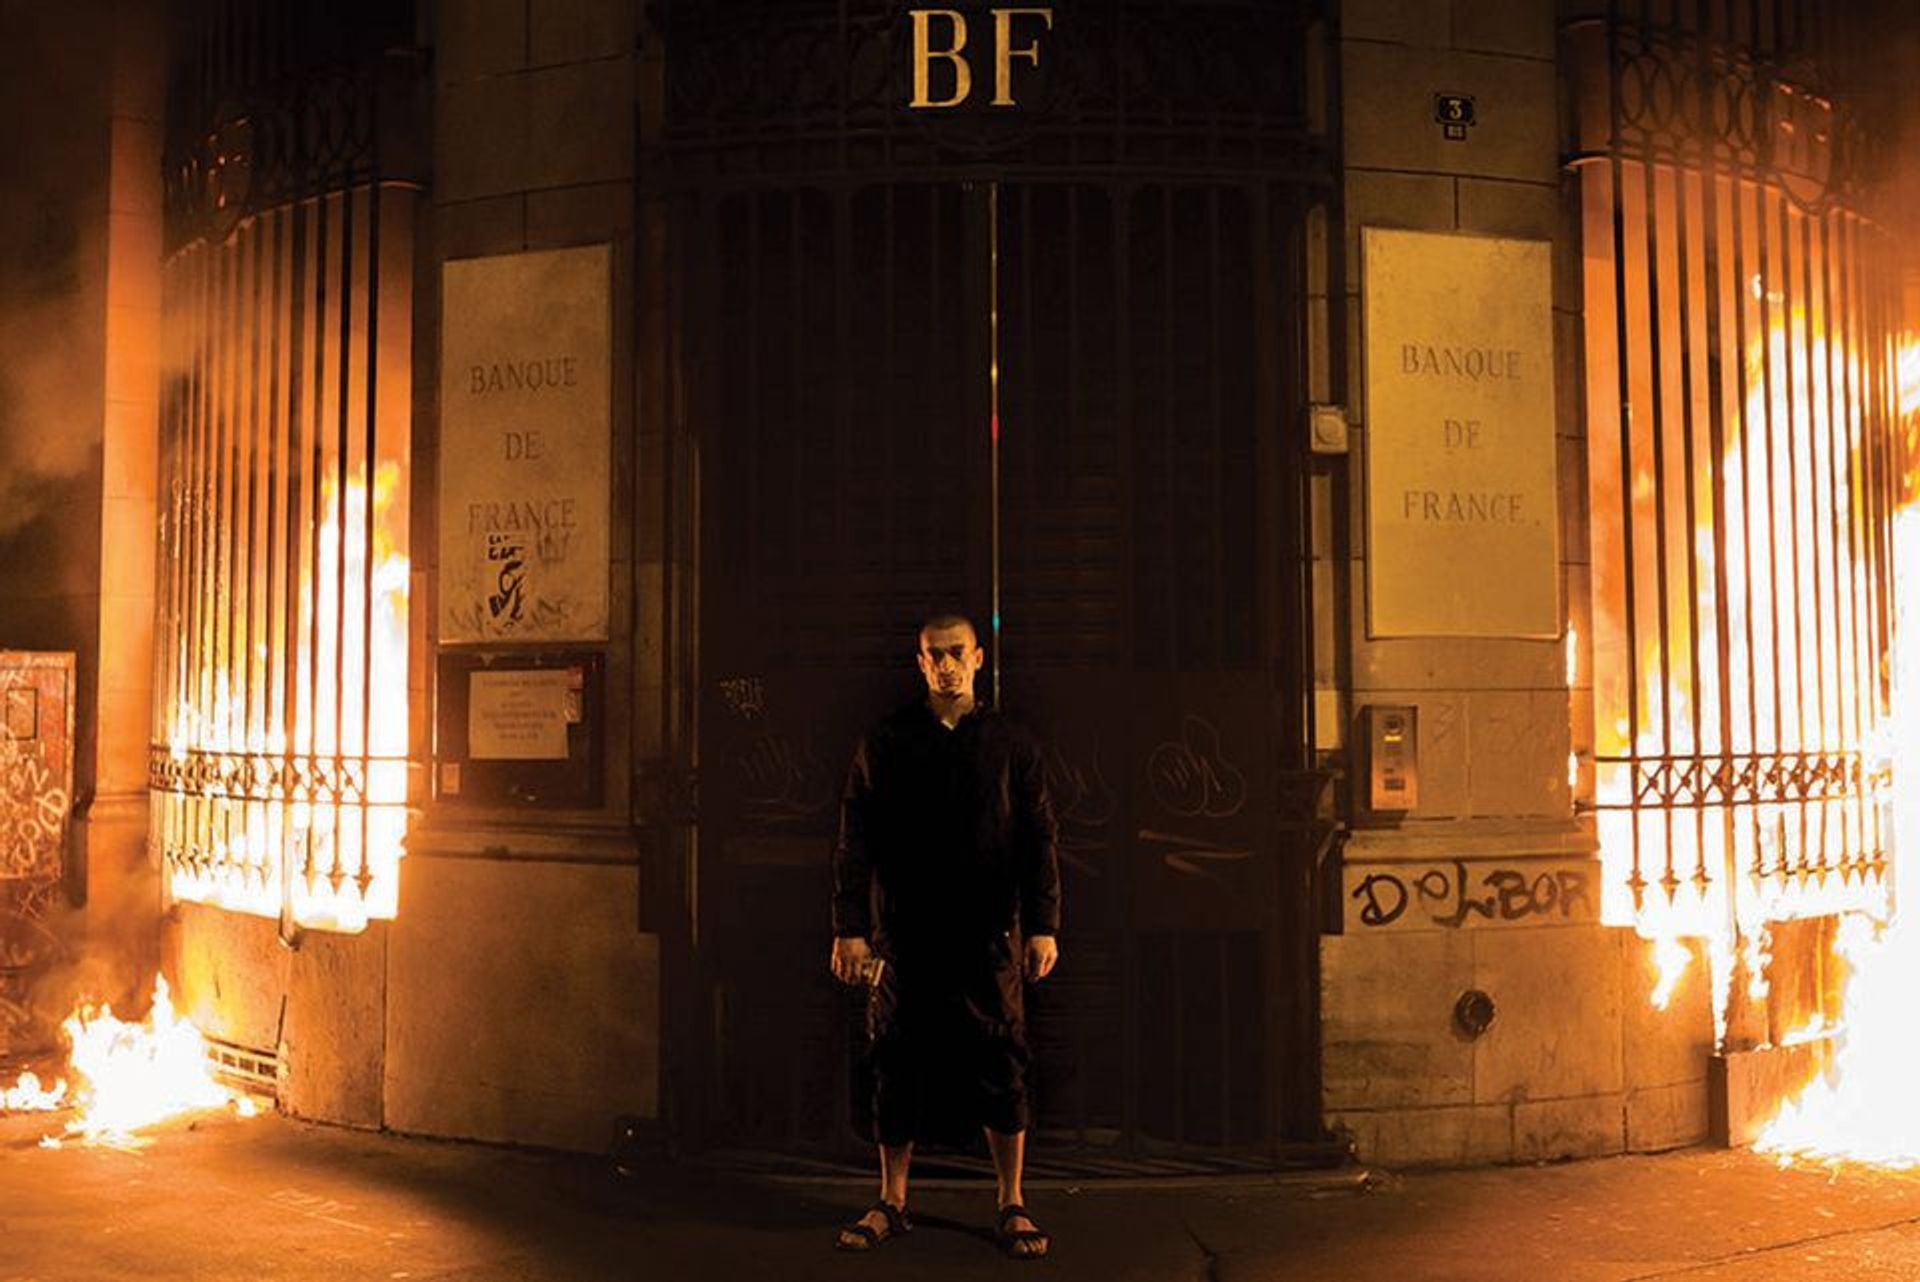 Pyotr Pavlensky poses in front of a Bank of France building after setting fire to the window gates as part of a performance in Paris ©  AP Photo/Capucine Henry